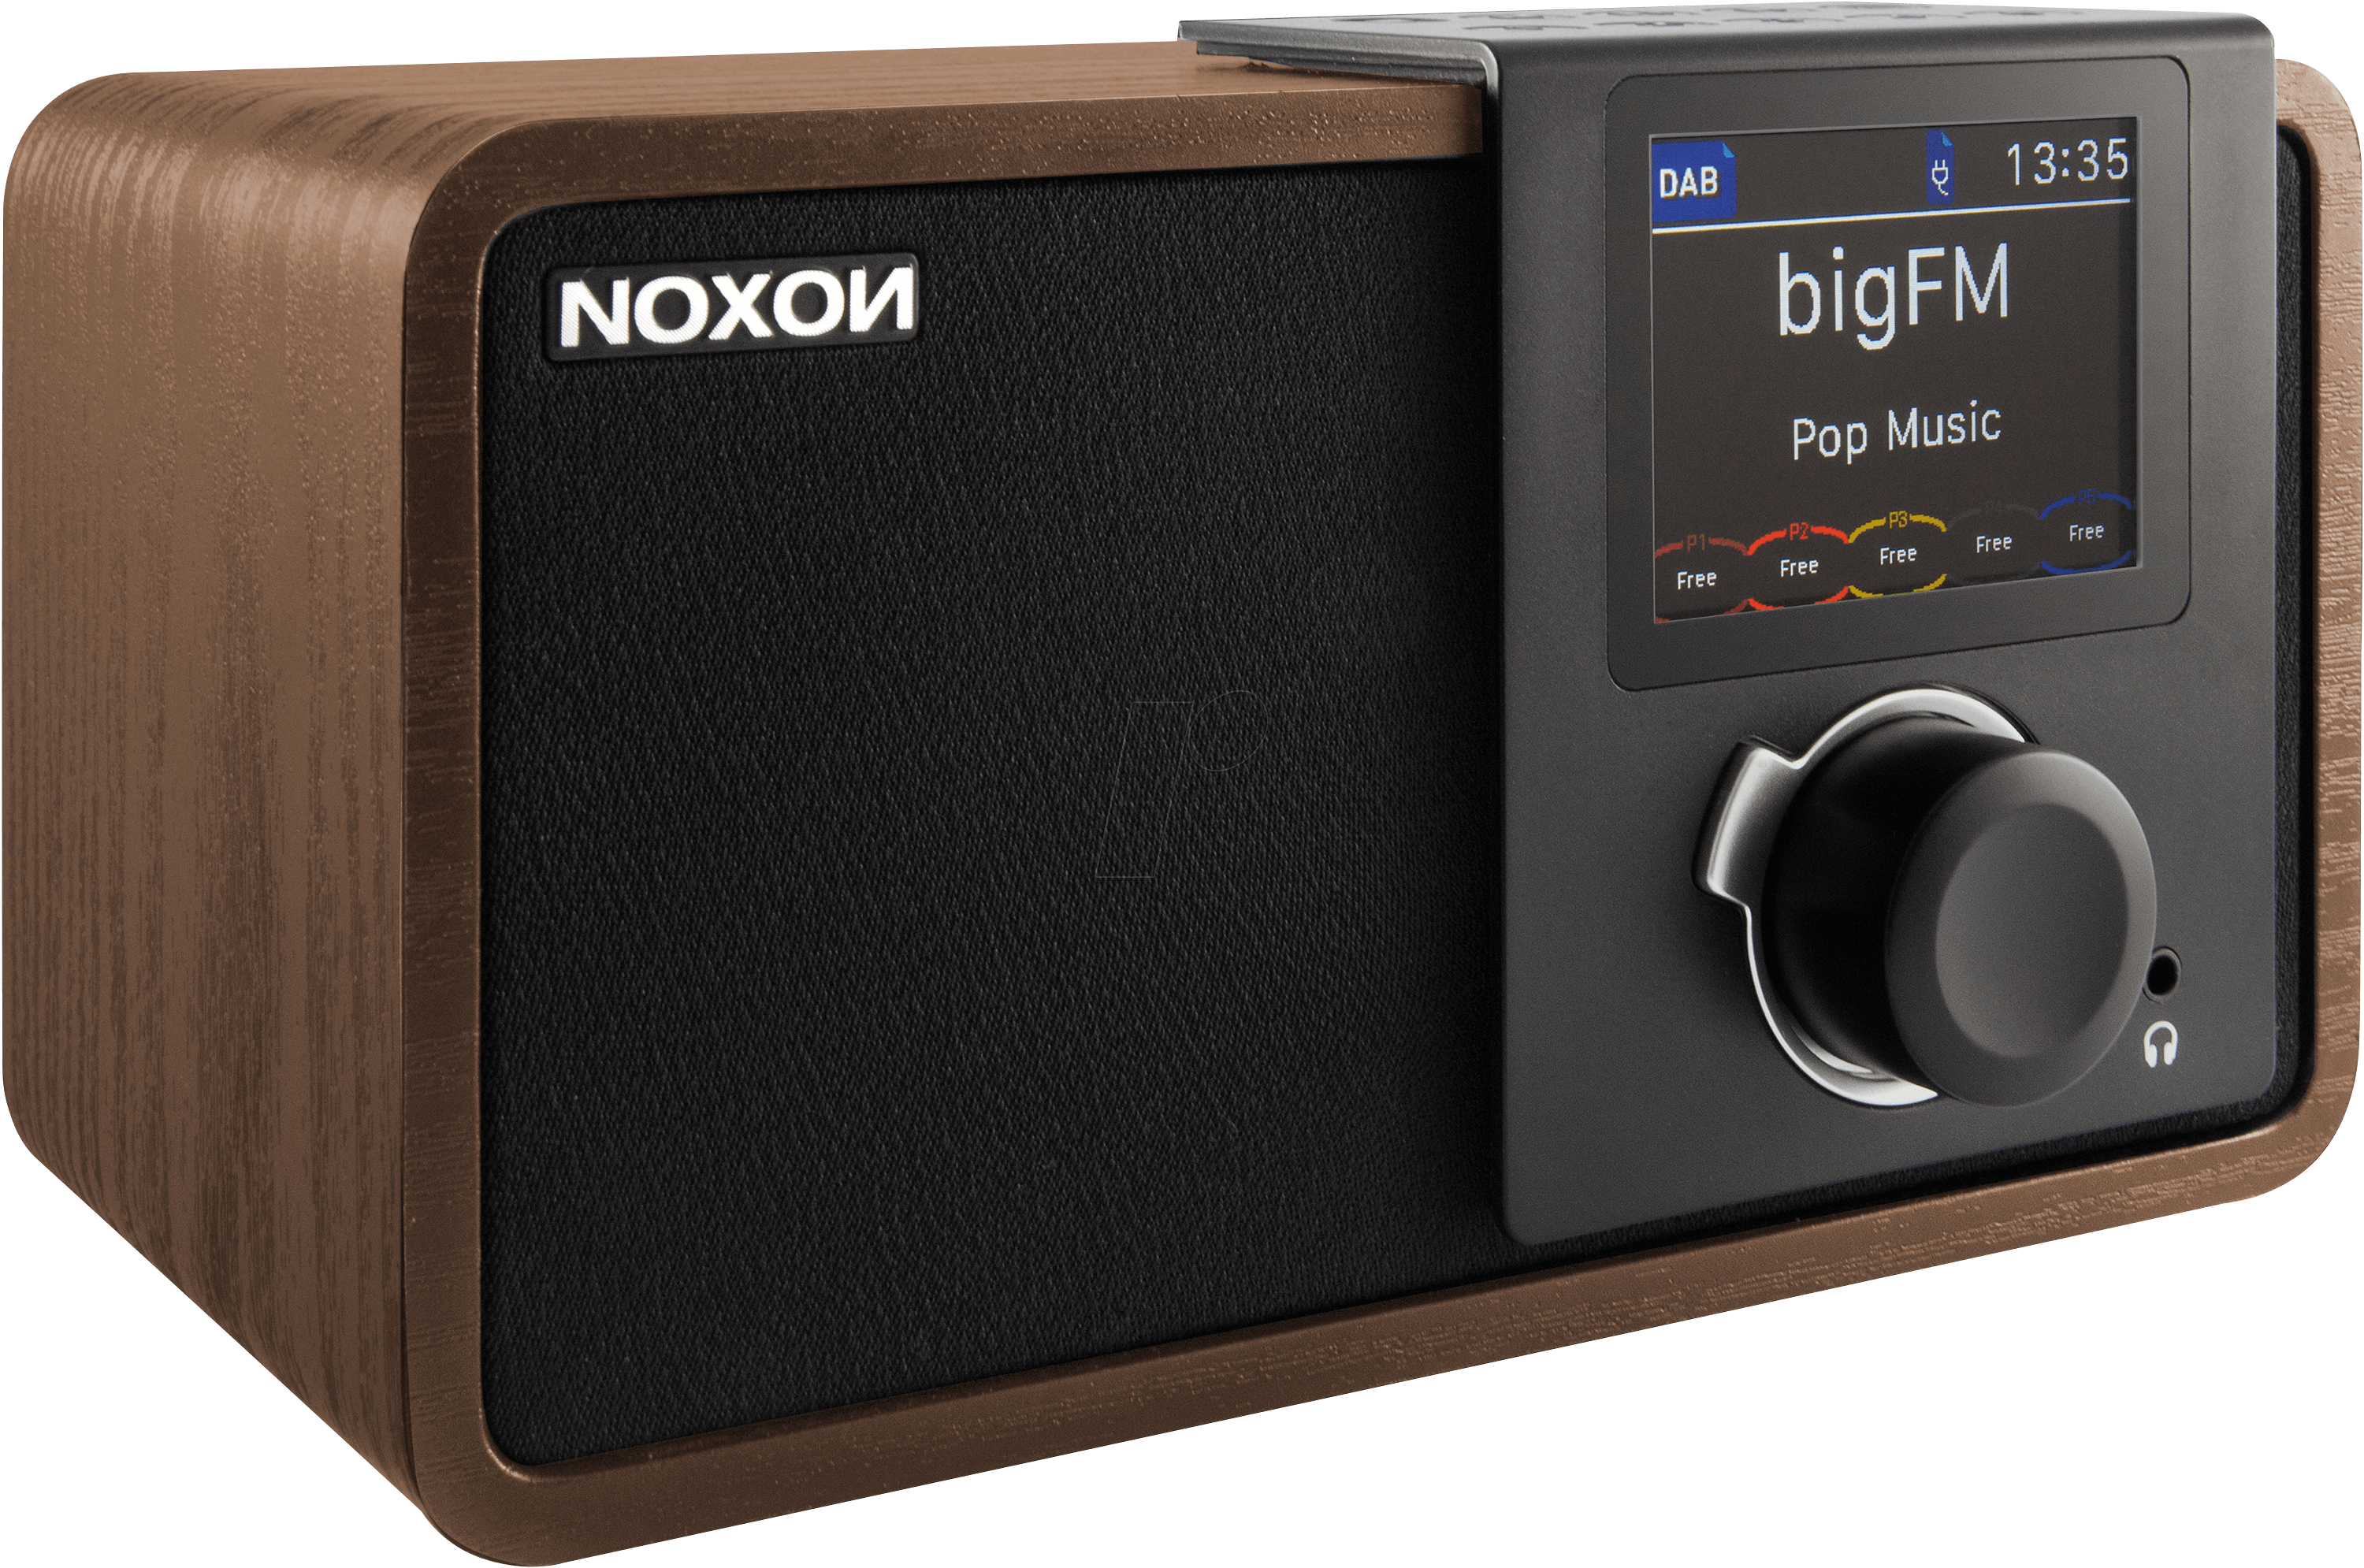 noxon 16200 mobiles dab radio mit farbdisplay bei. Black Bedroom Furniture Sets. Home Design Ideas